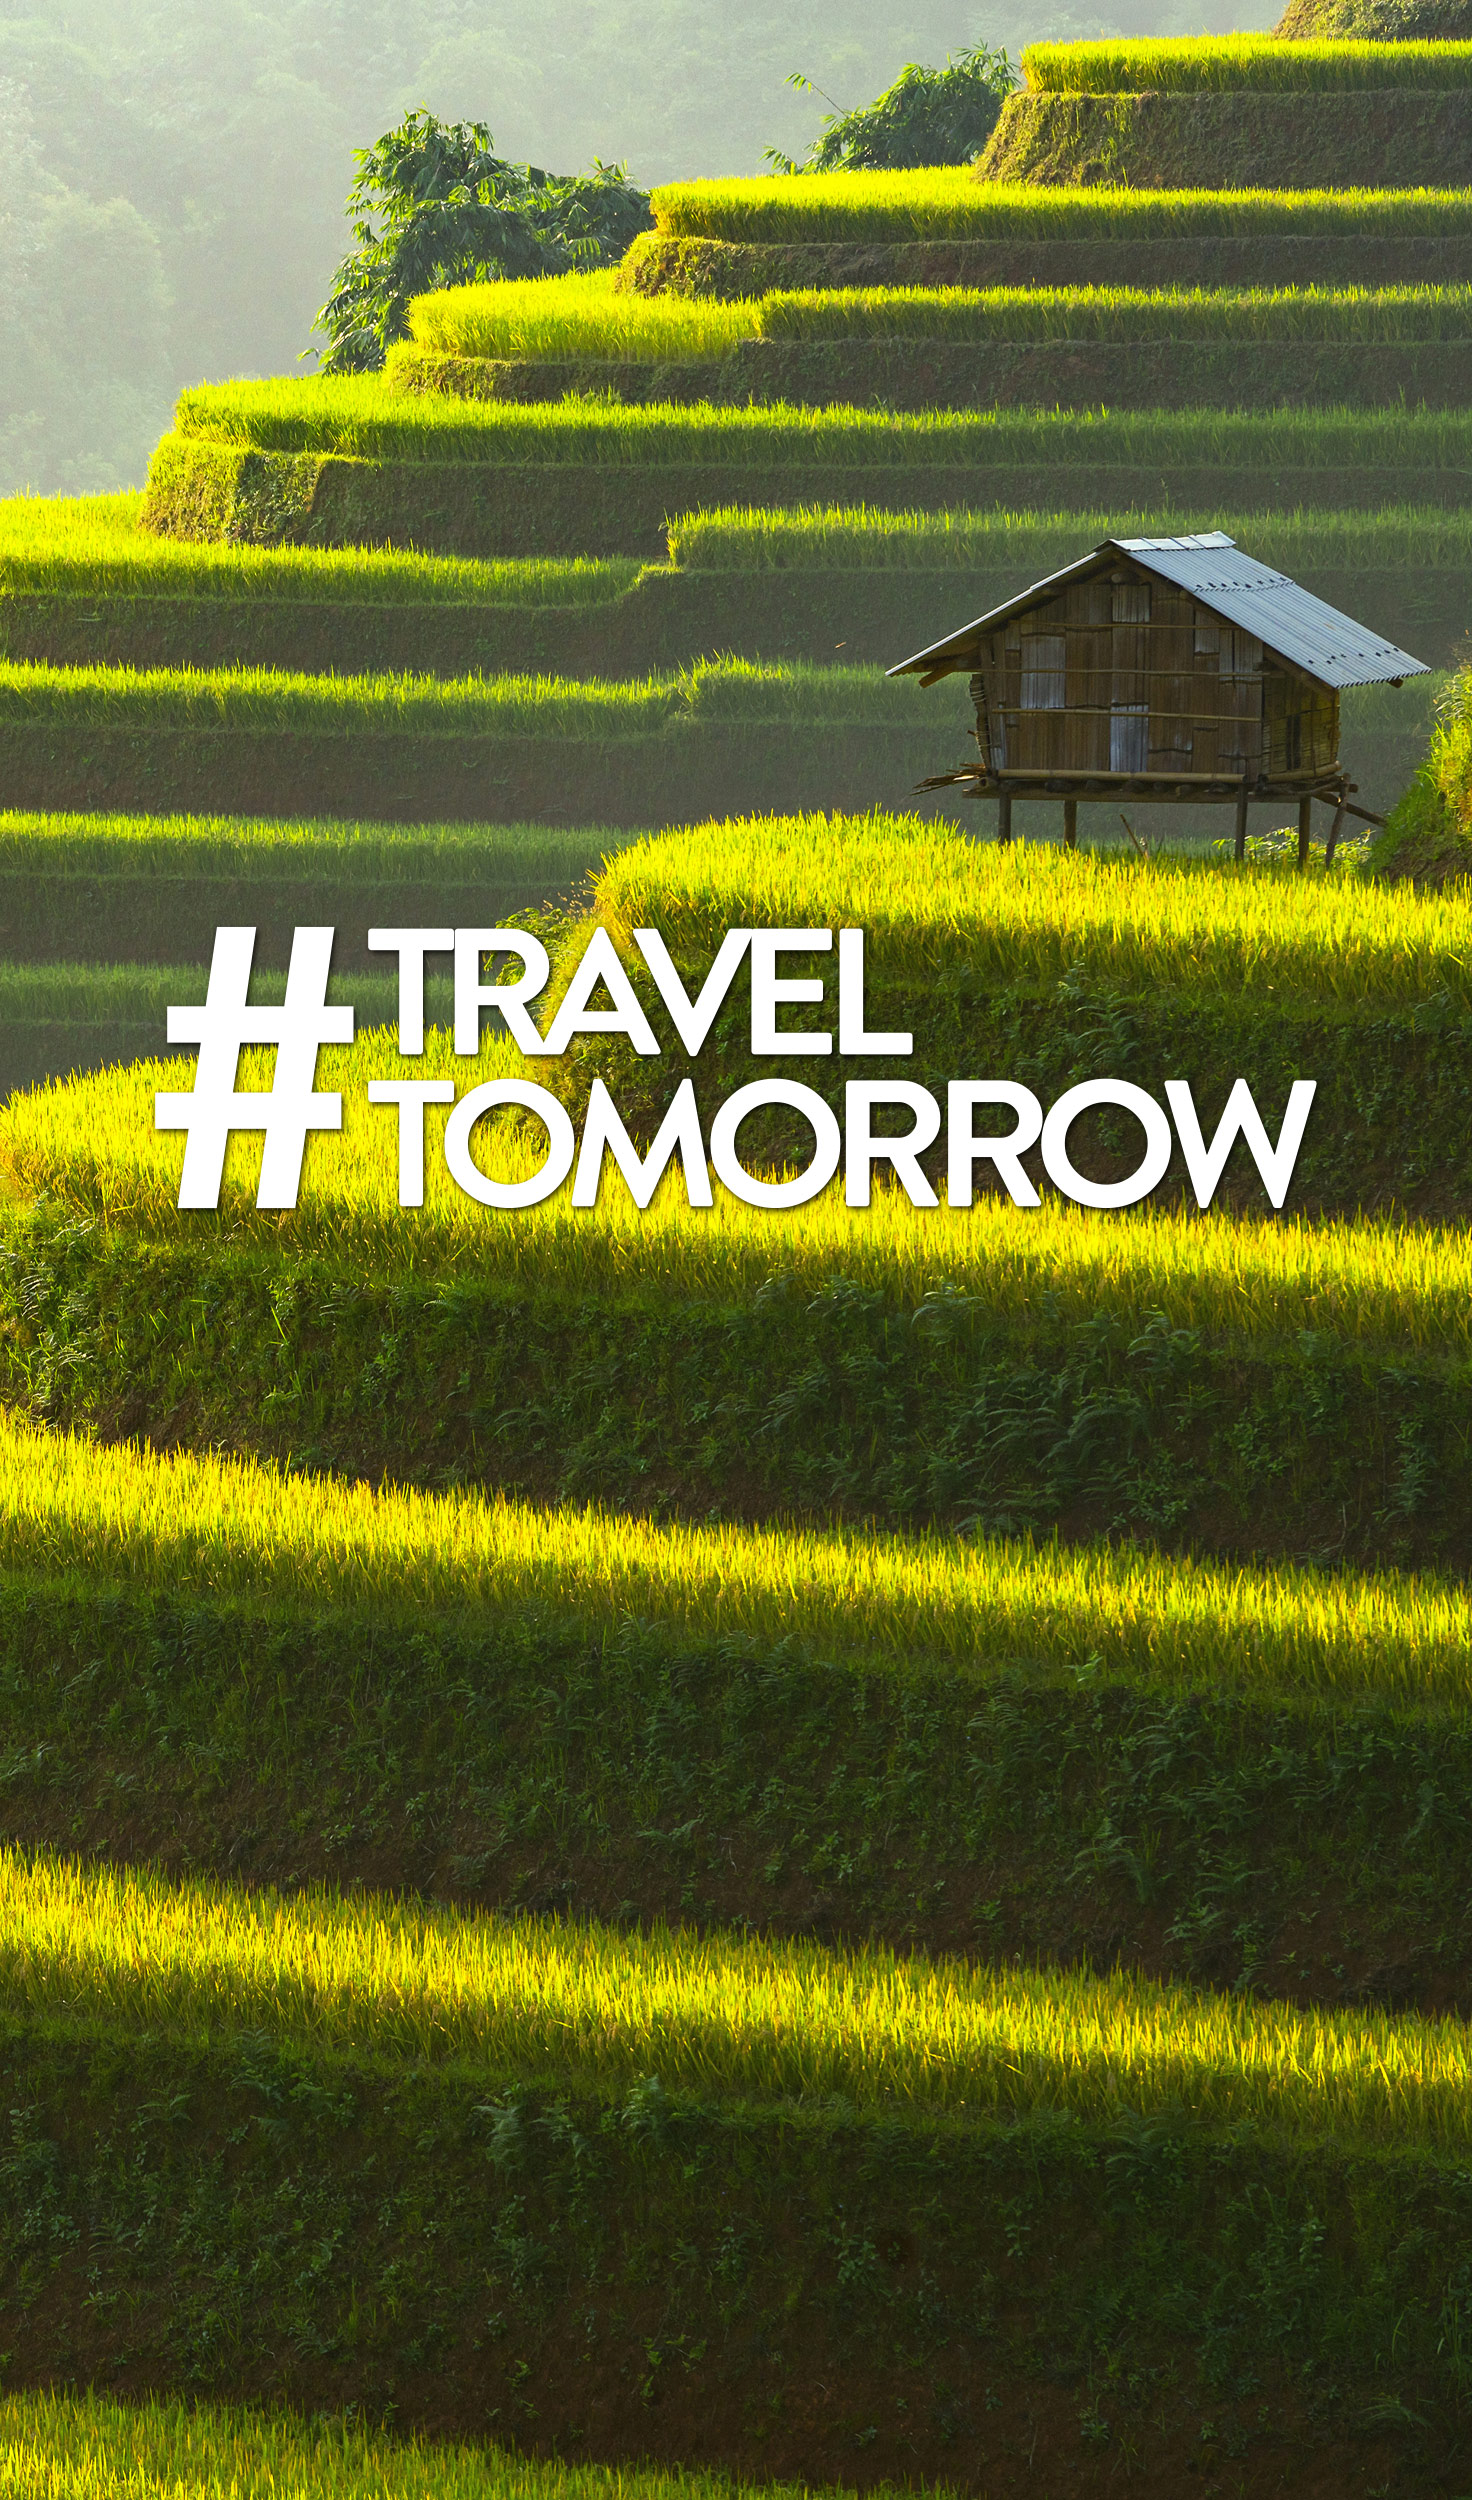 #Travel Tomorrow